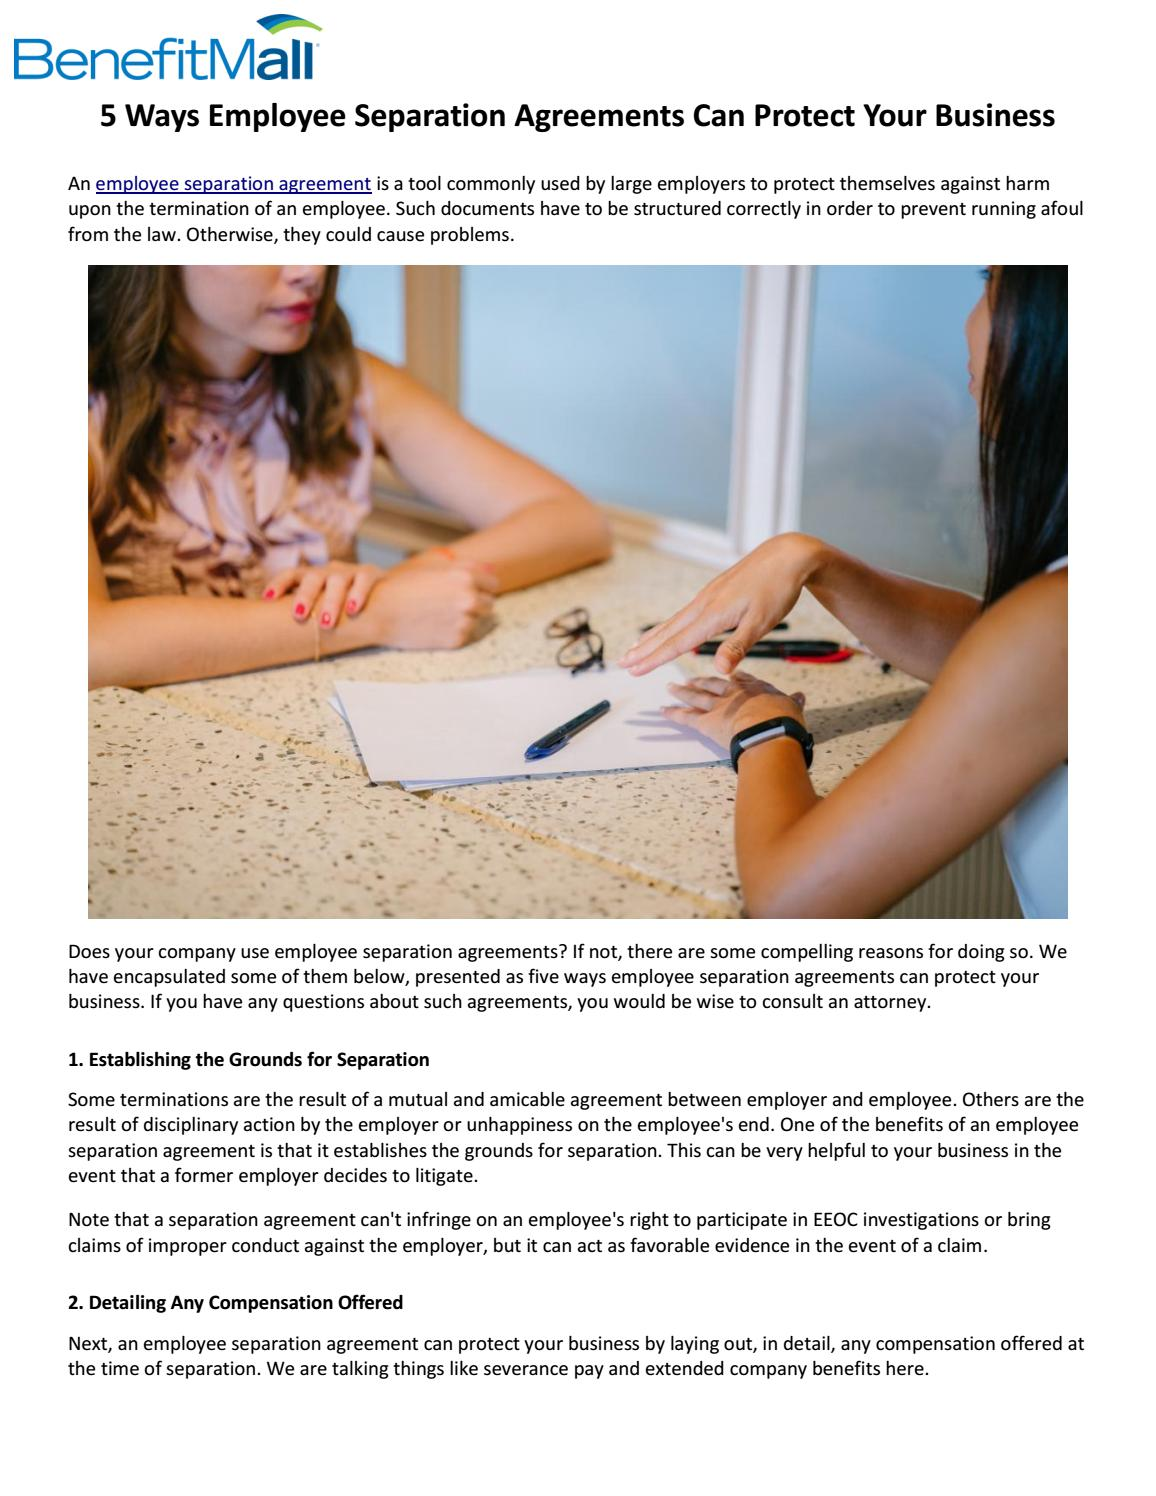 5 Ways Employee Separation Agreements Can Protect Your